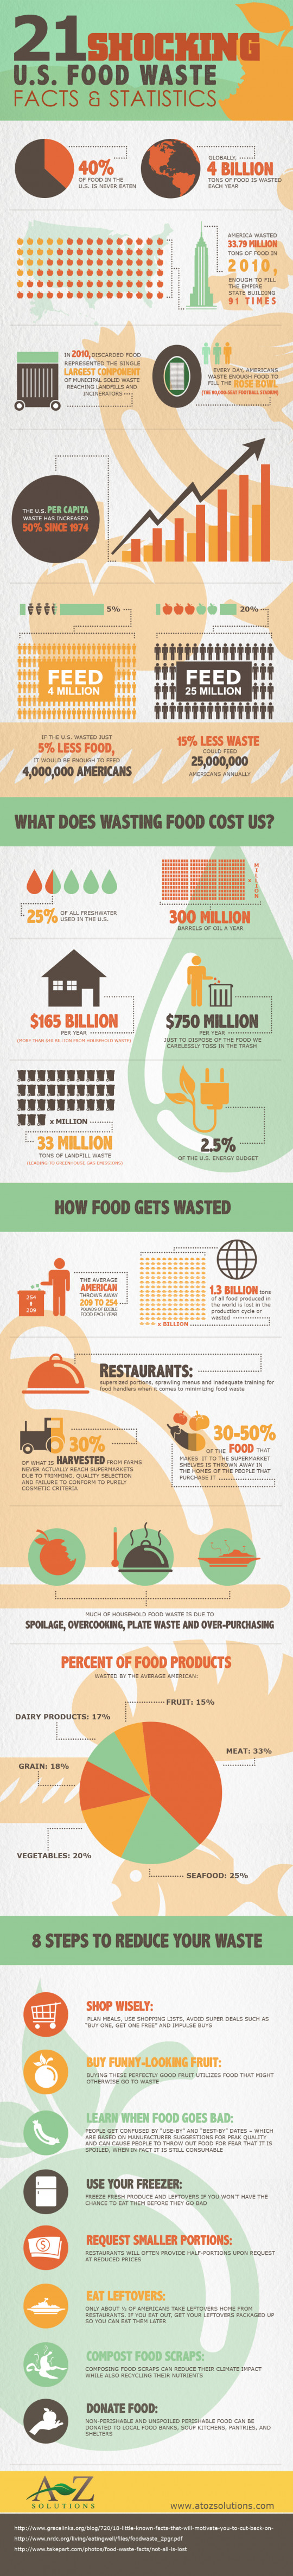 21 Shocking U.S. Food Waste Facts & Statistics